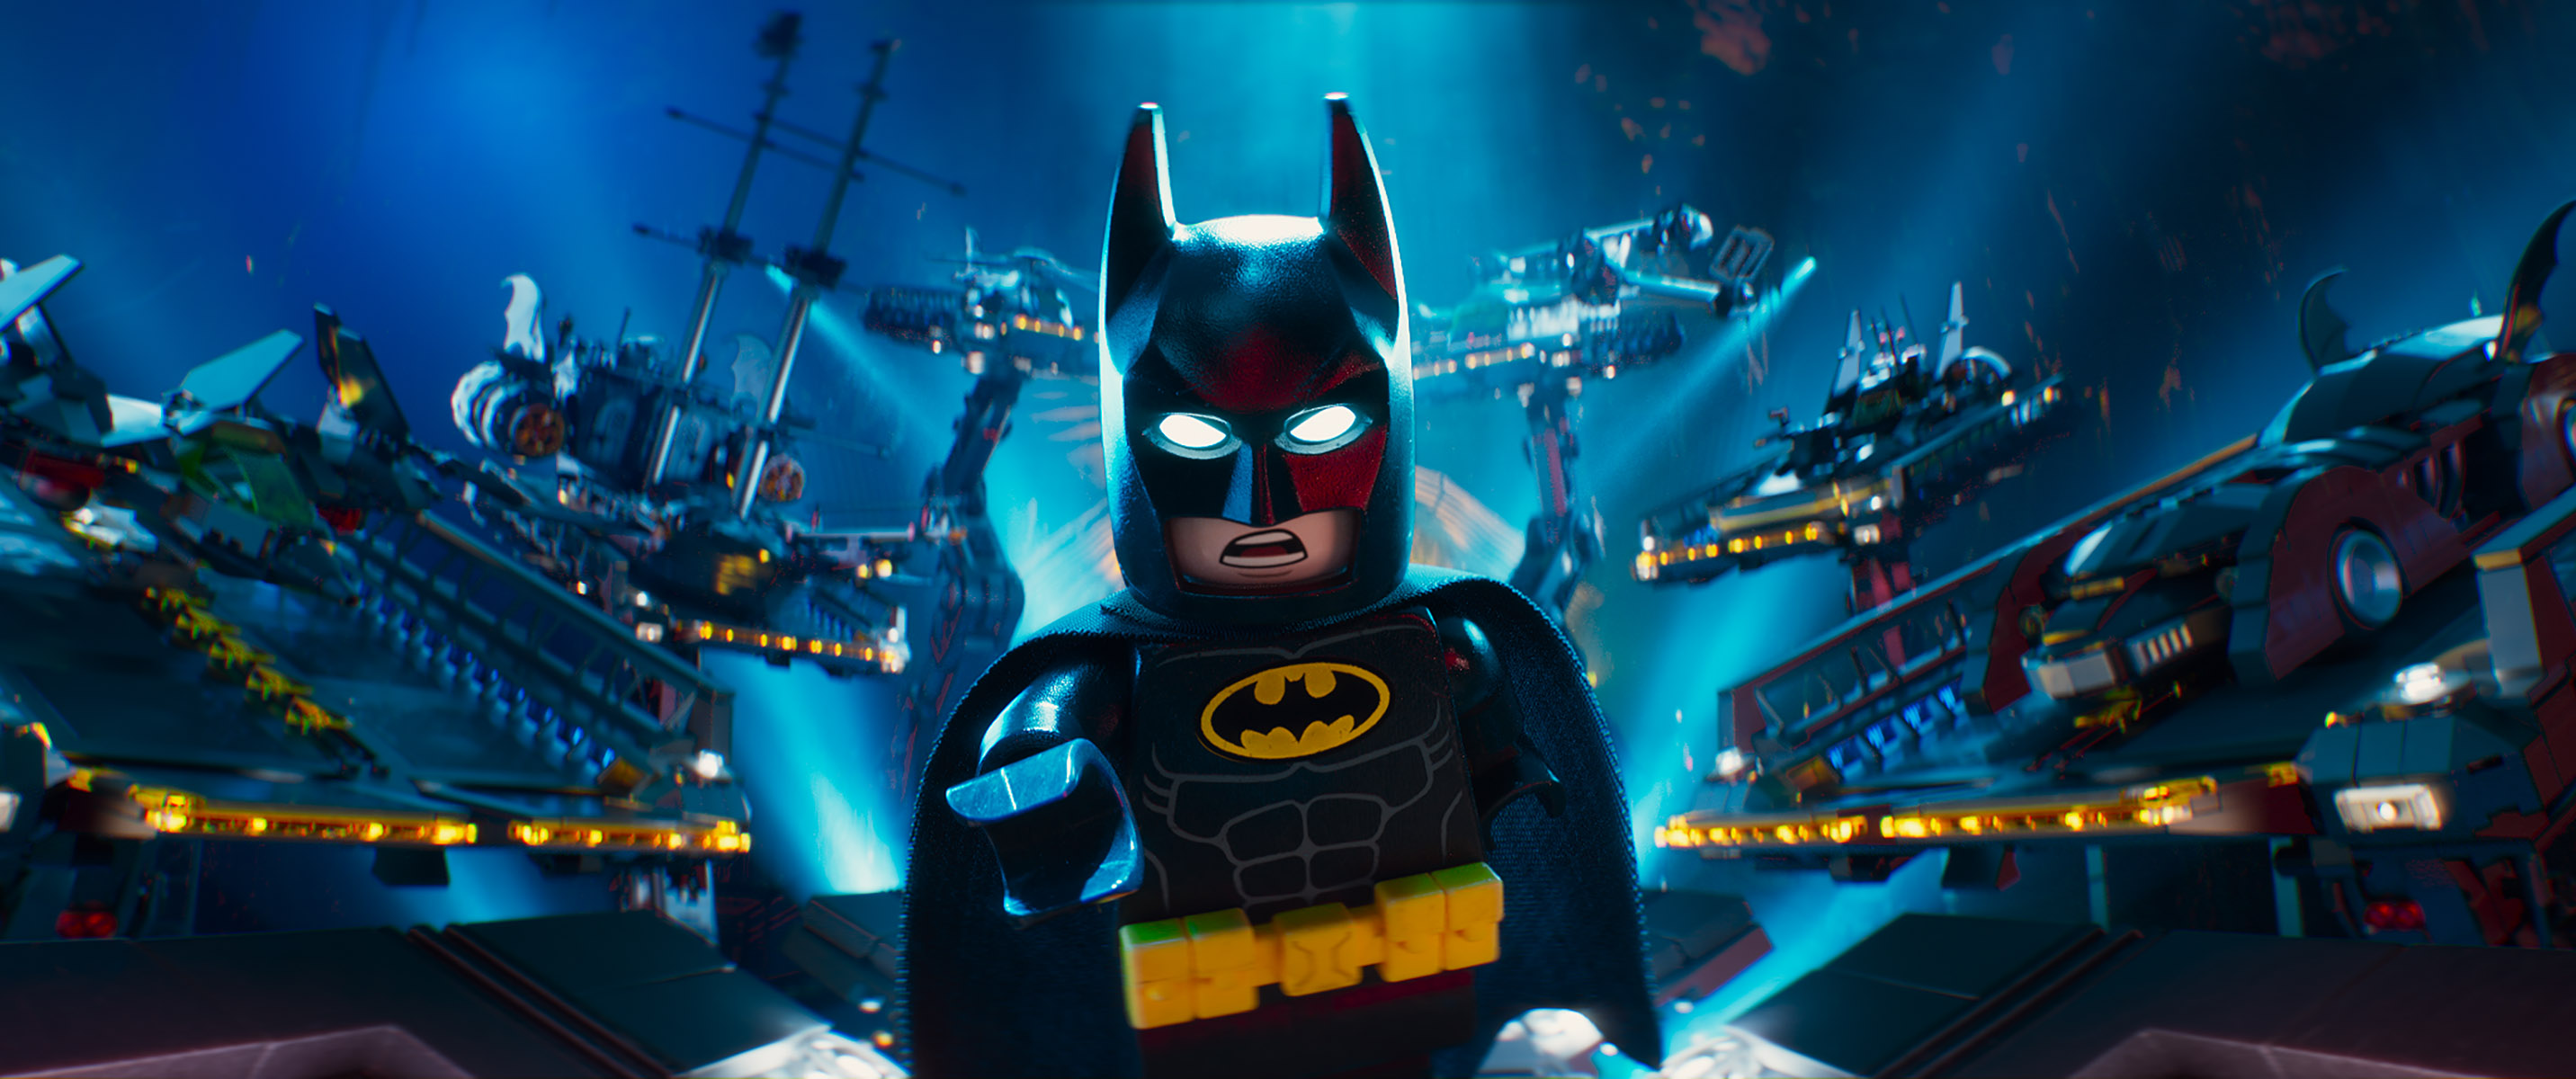 the lego batman movie how to build a better gotham brick by brick indiewire